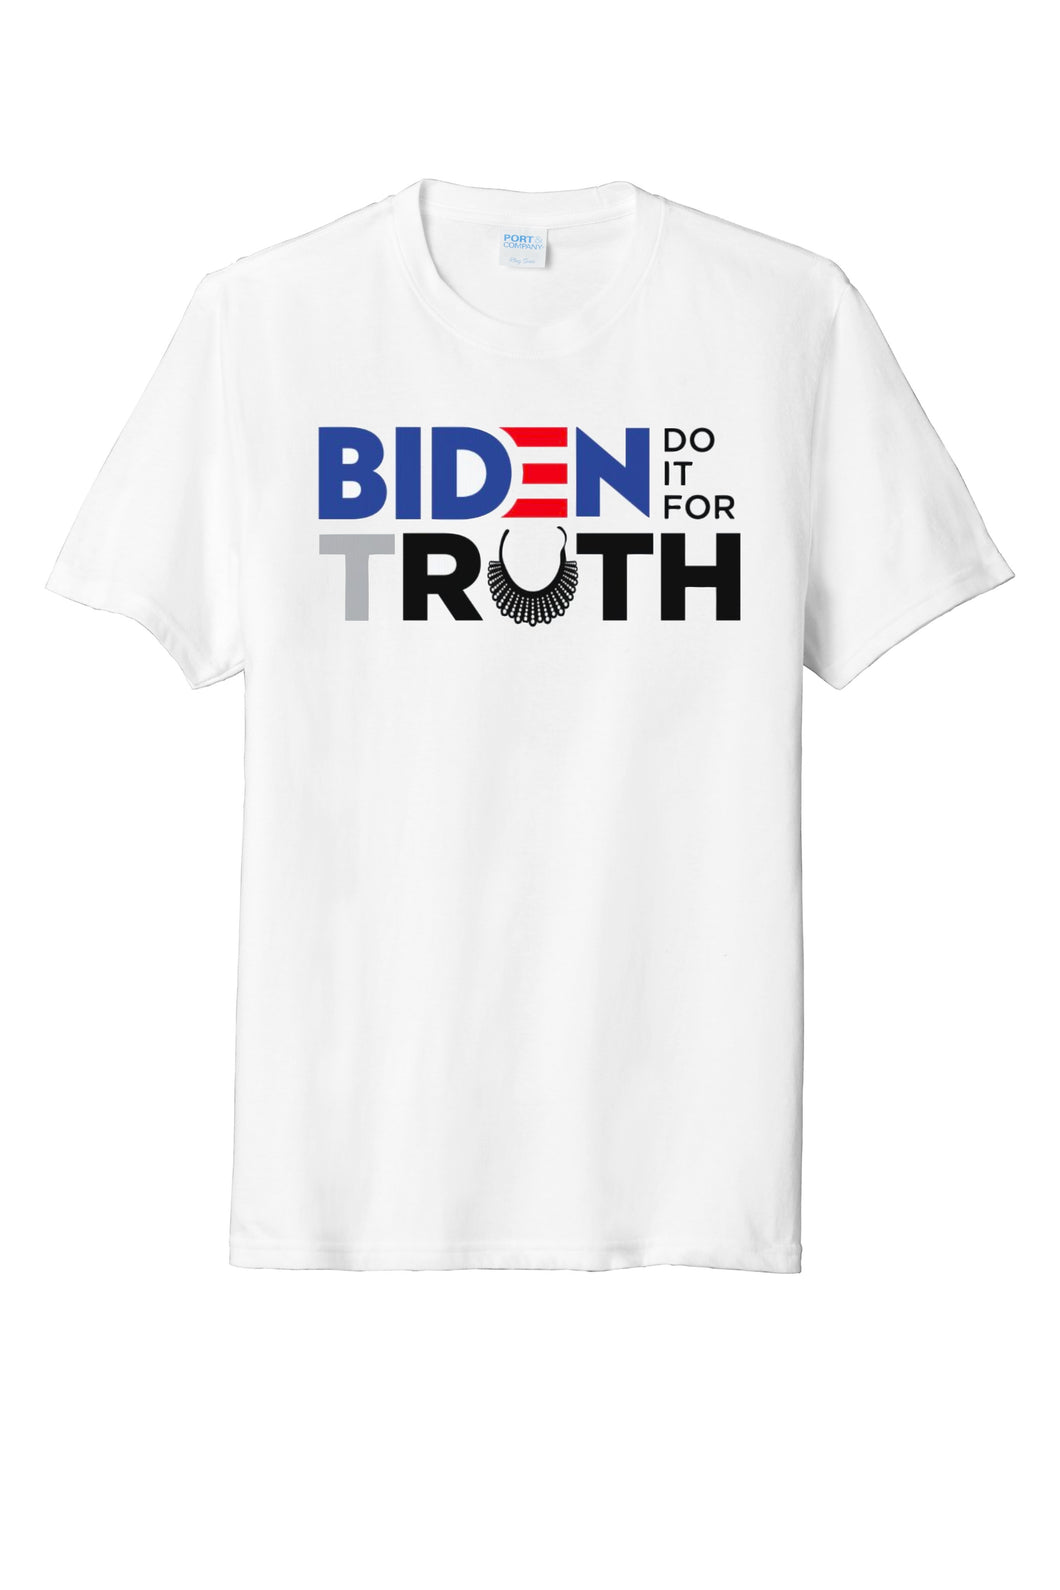 Biden (T)Ruth Short Sleeve T-Shirt